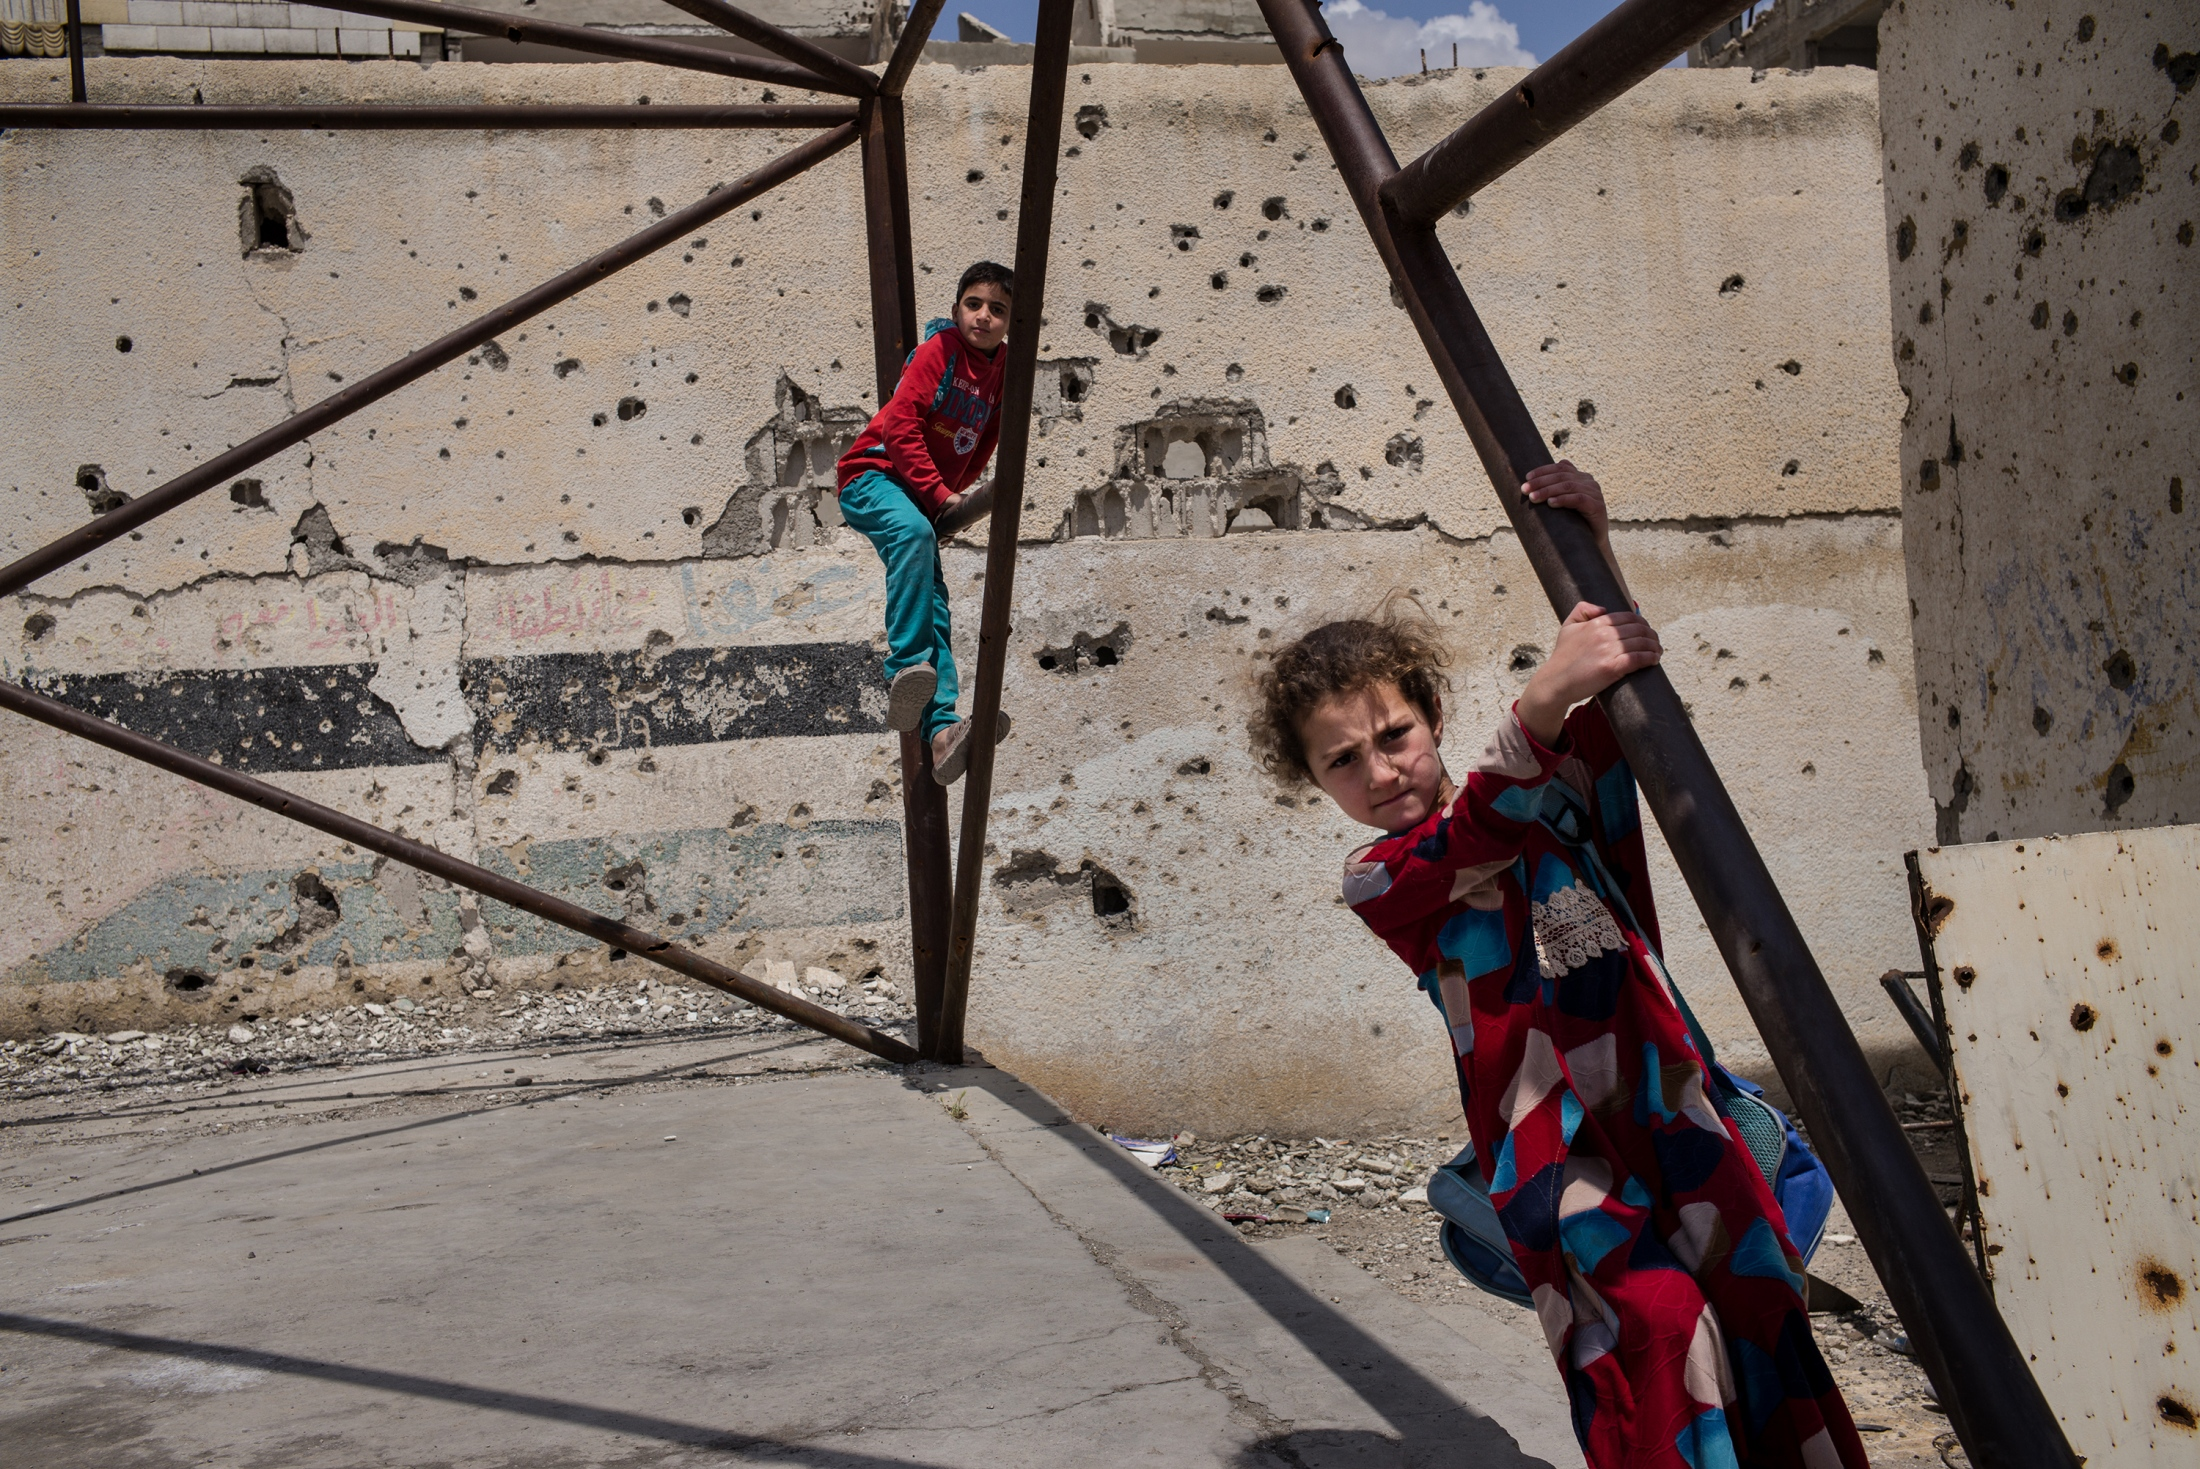 Children play in the courtyard at the heavily damaged Hawari Bu Medyan School, in Raqqa, Syria, on Thursday, May 10, 2018. The school is located opposite a building that was used by ISIS's religious police, the Hisba, and was also the site of intense fighting during the offensive to retake the city from the extremist group. The school reopened in January 2018.